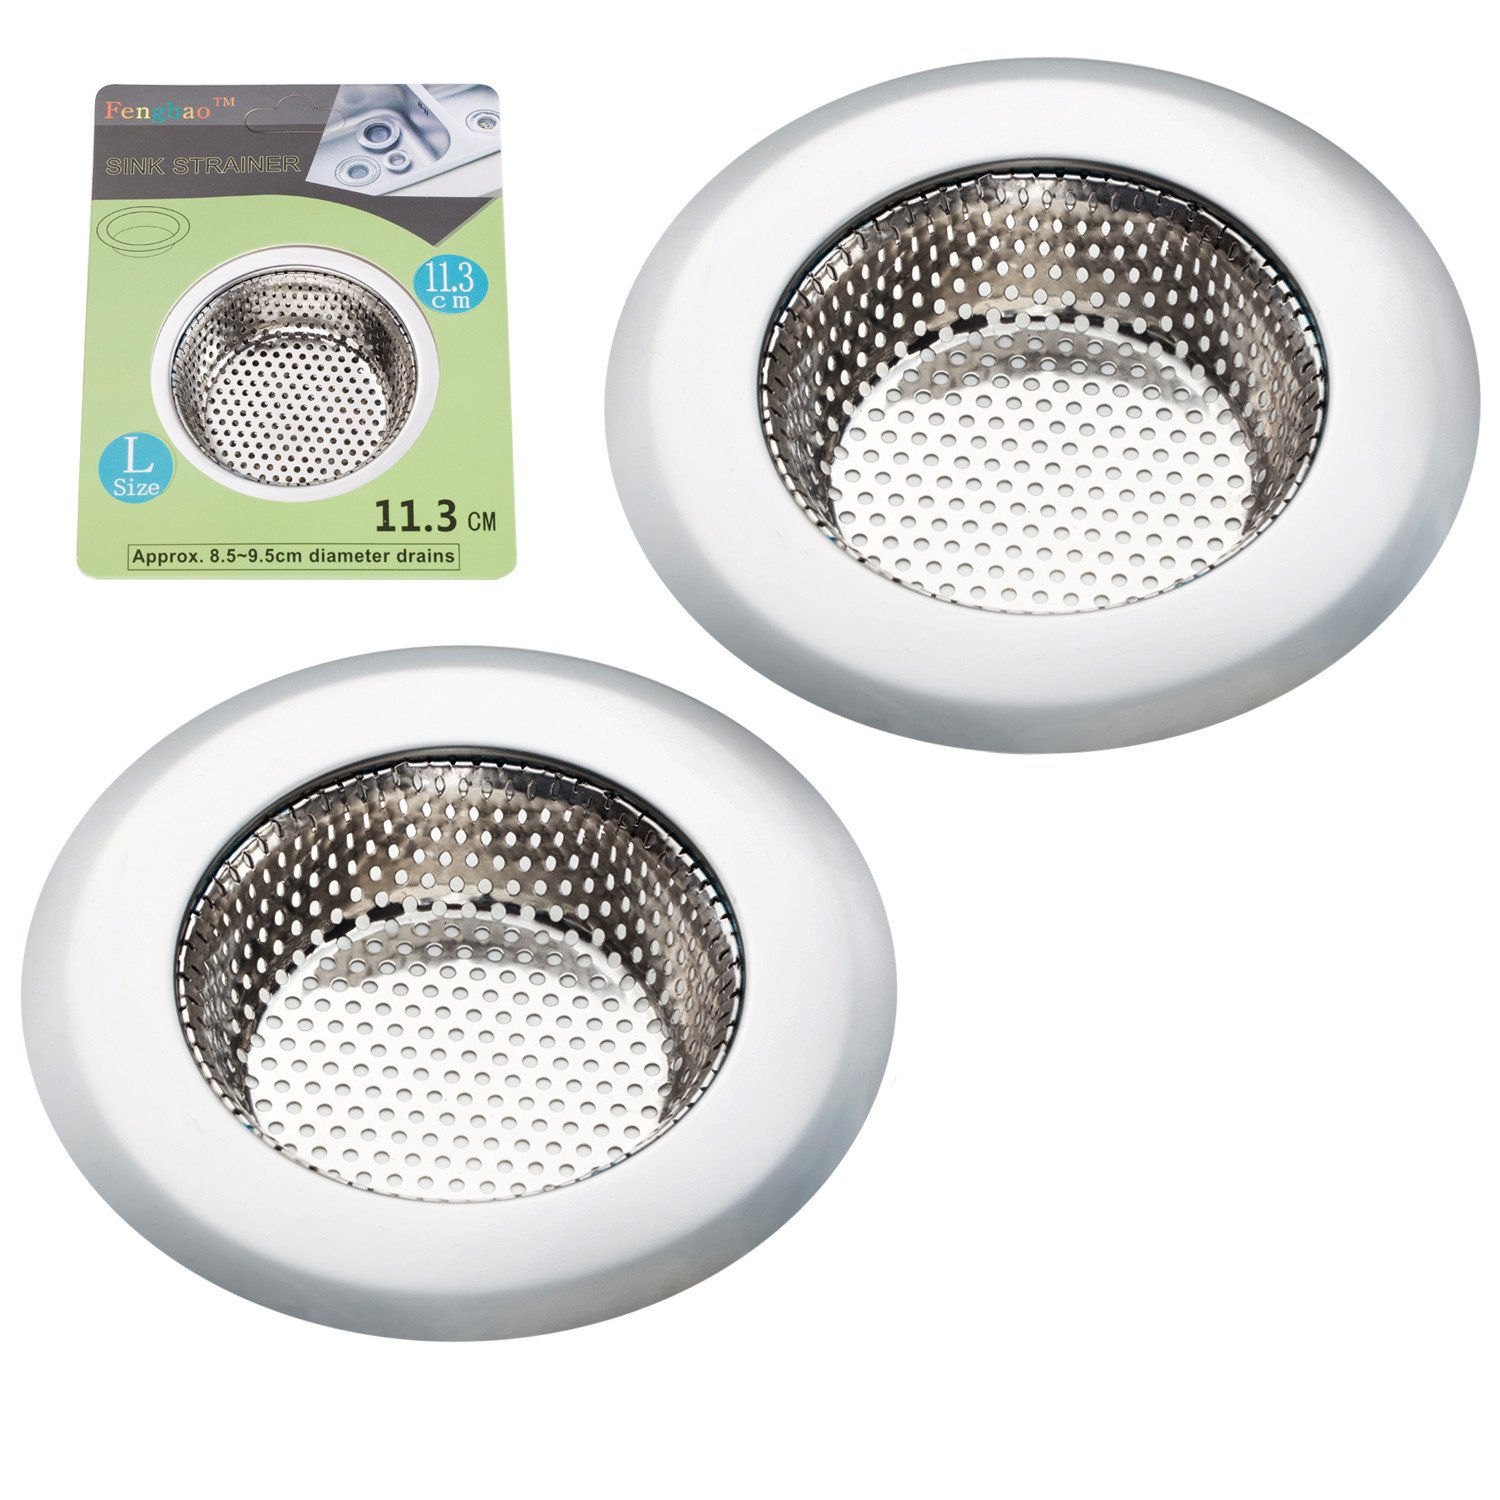 Kitchen Drains & Strainers Amazon